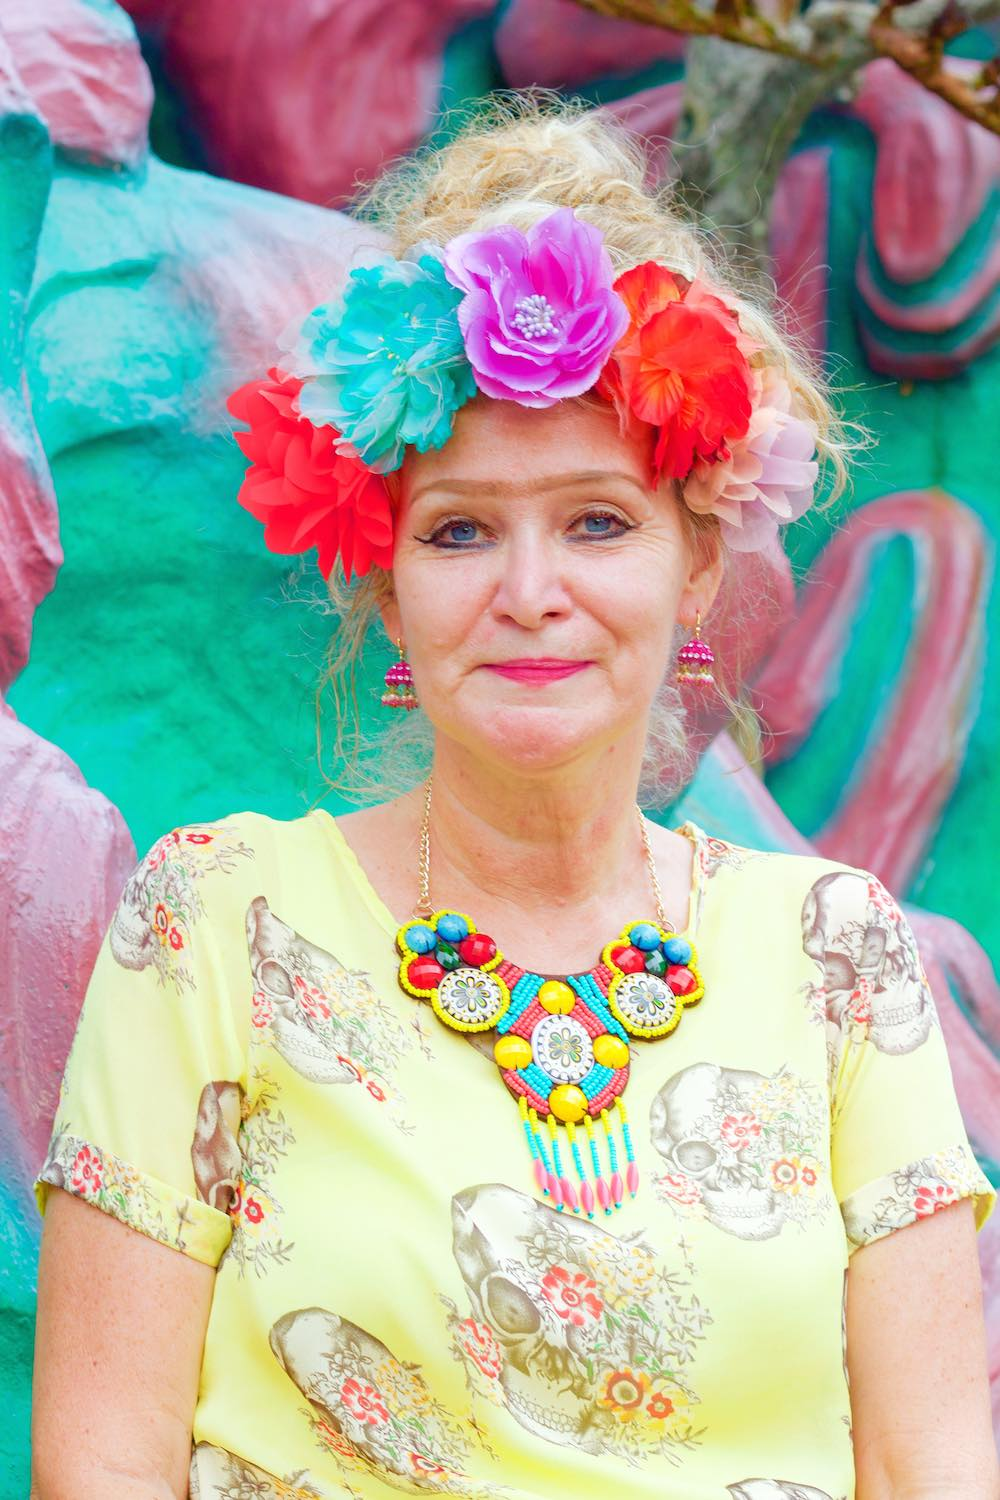 Woman with flowers in her hair and yellow top in Haw Par Villa |curlytraveller.com